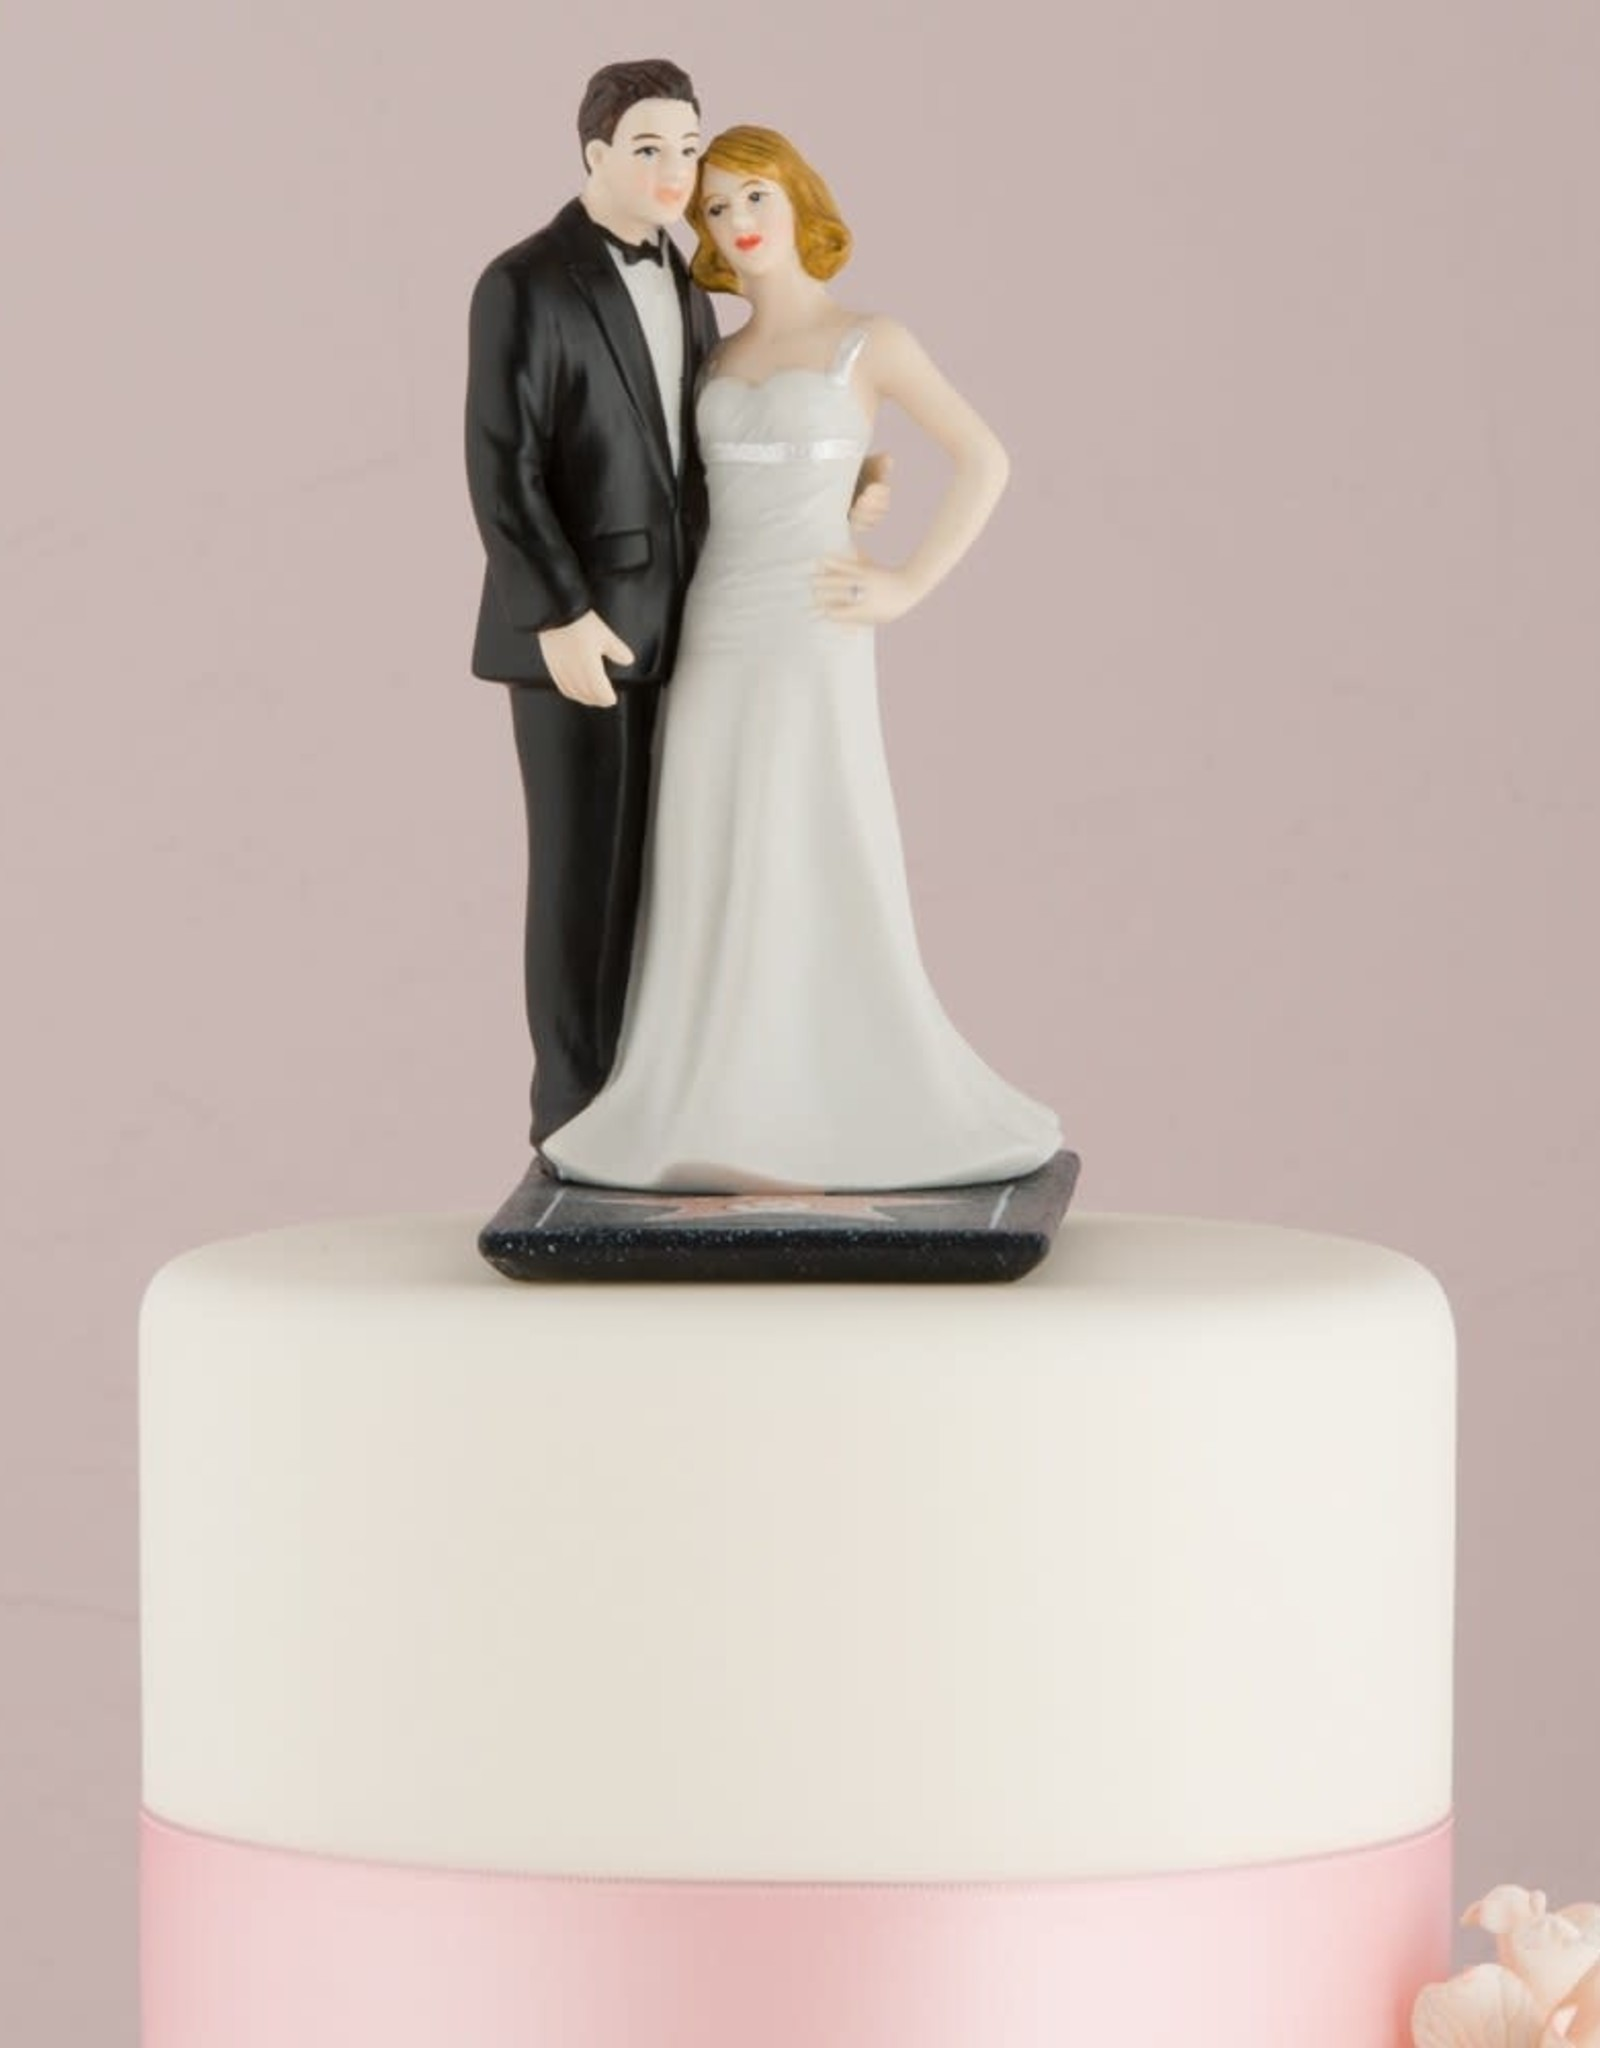 Hollywood Couple Cake Topper